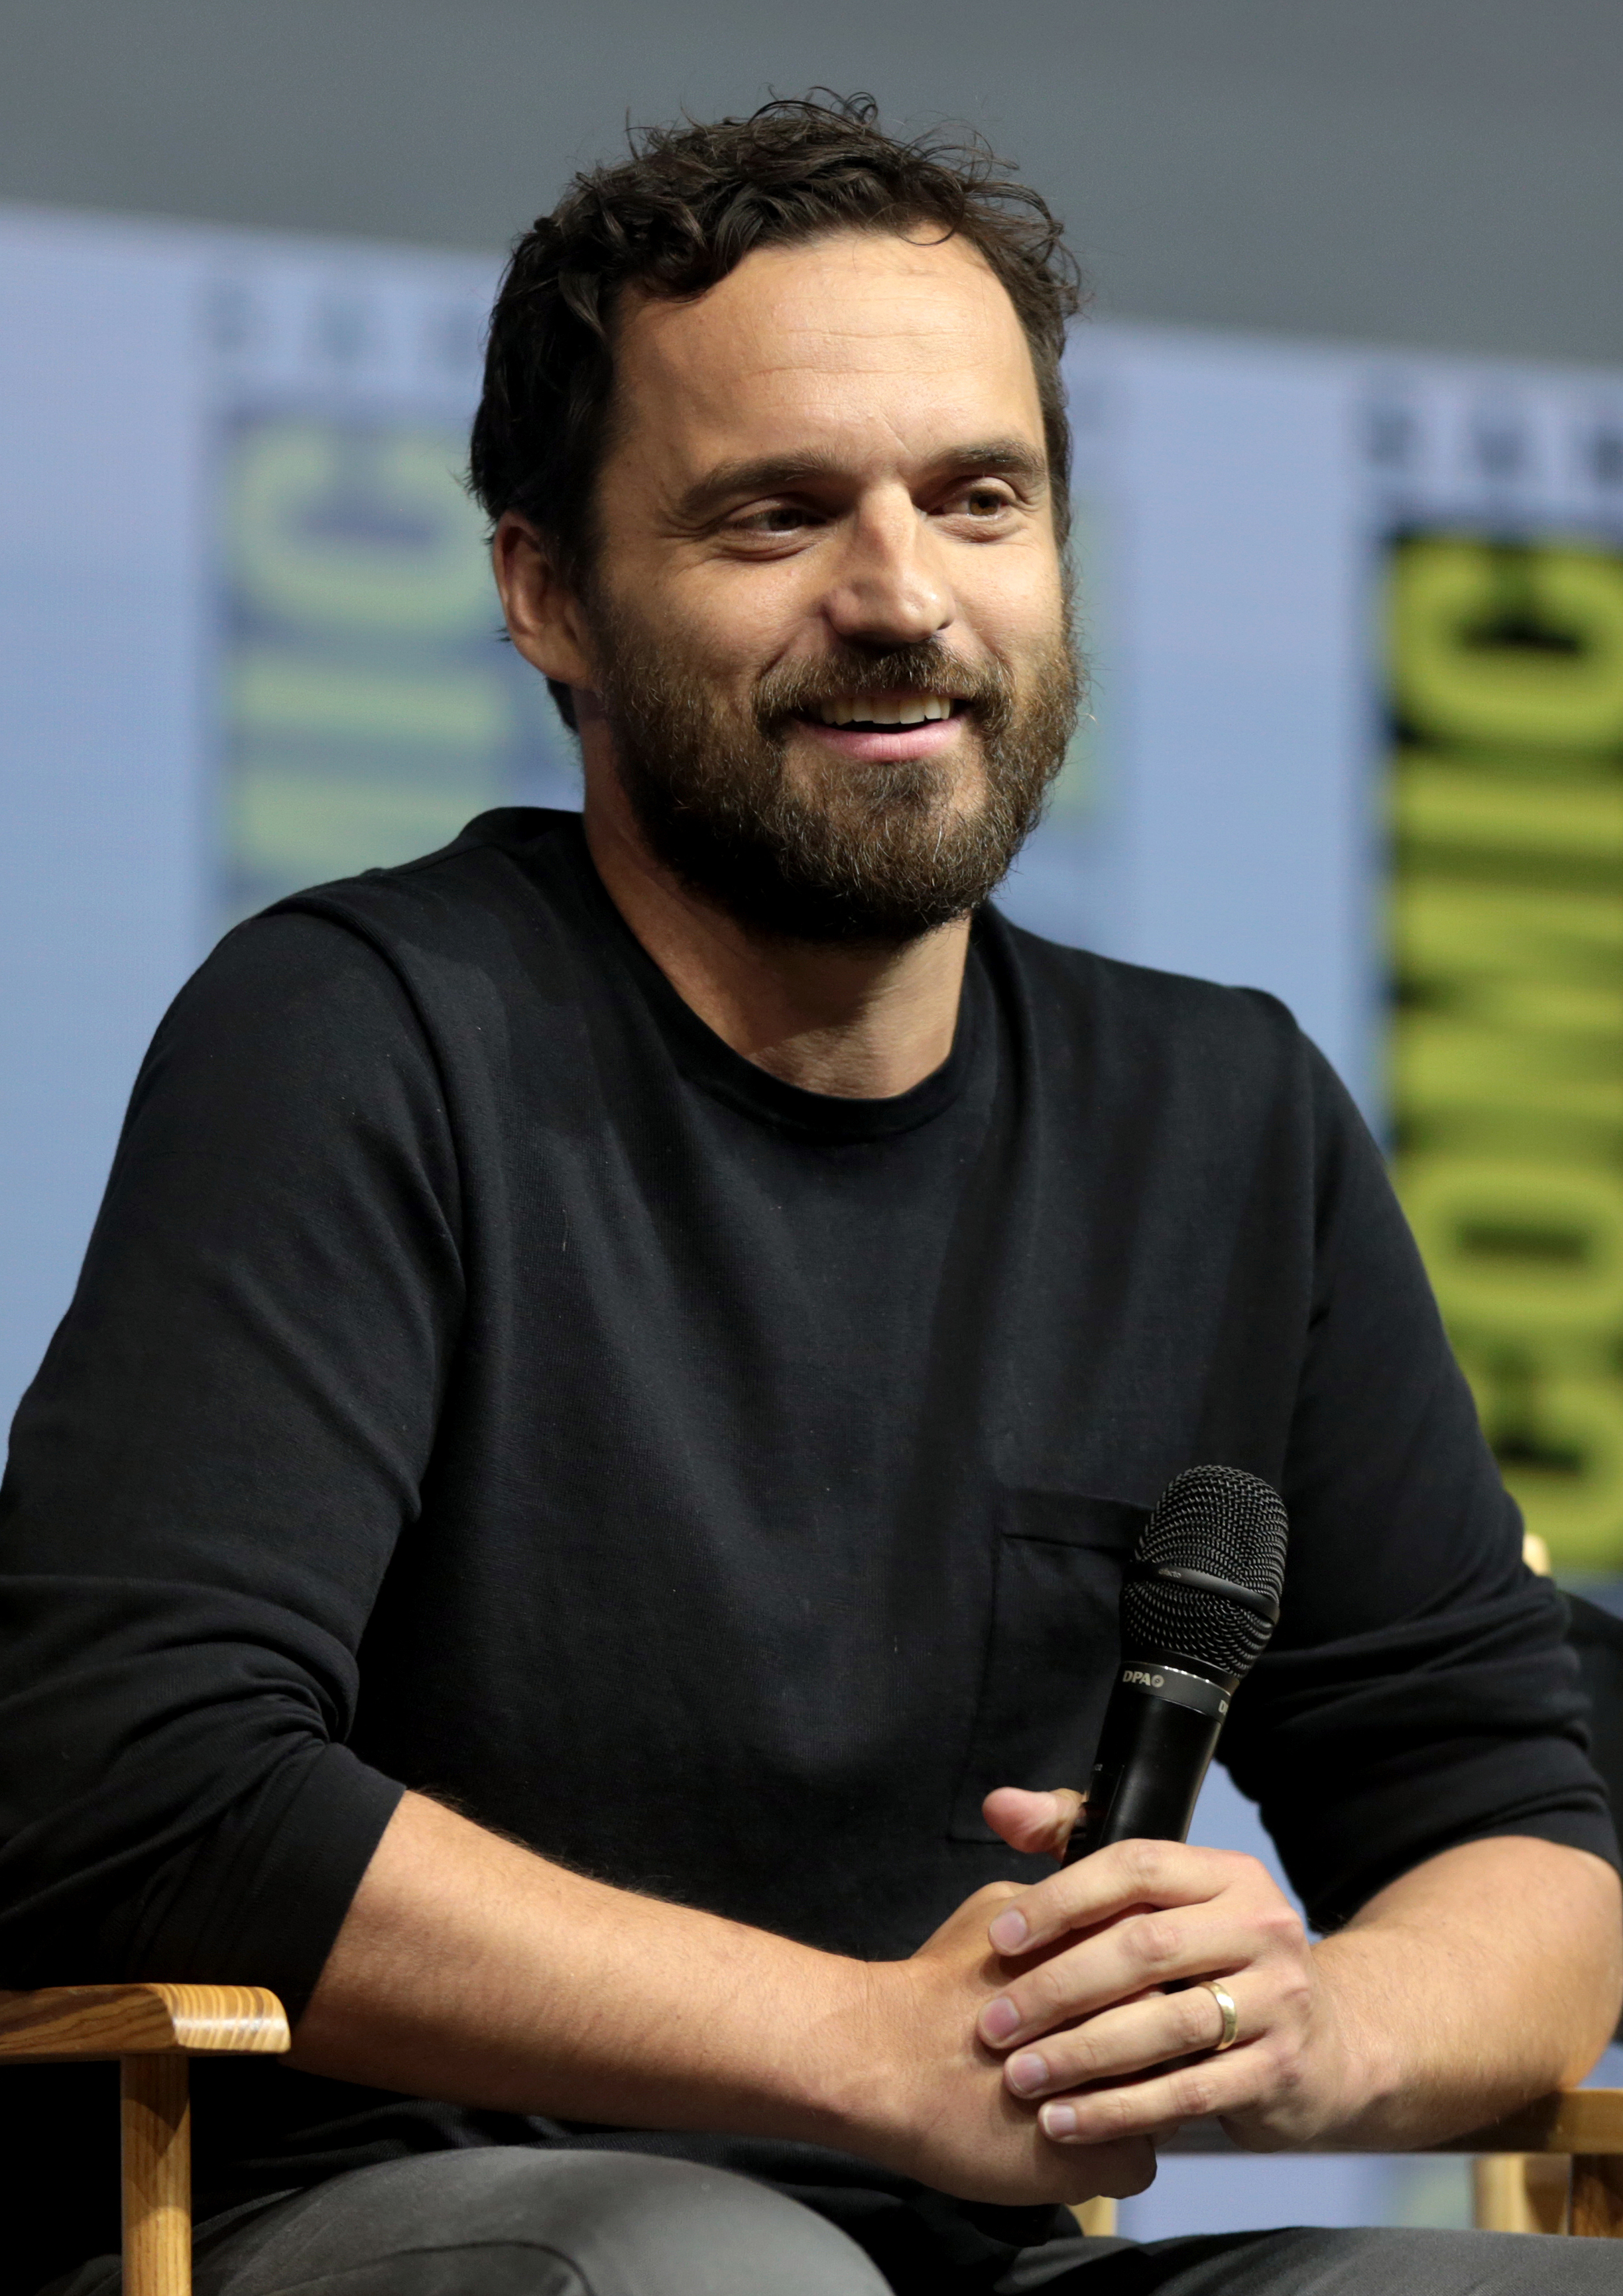 The 40-year old son of father Ken Weinberger and mother Eve Johnson Jake Johnson in 2018 photo. Jake Johnson earned a  million dollar salary - leaving the net worth at 2 million in 2018